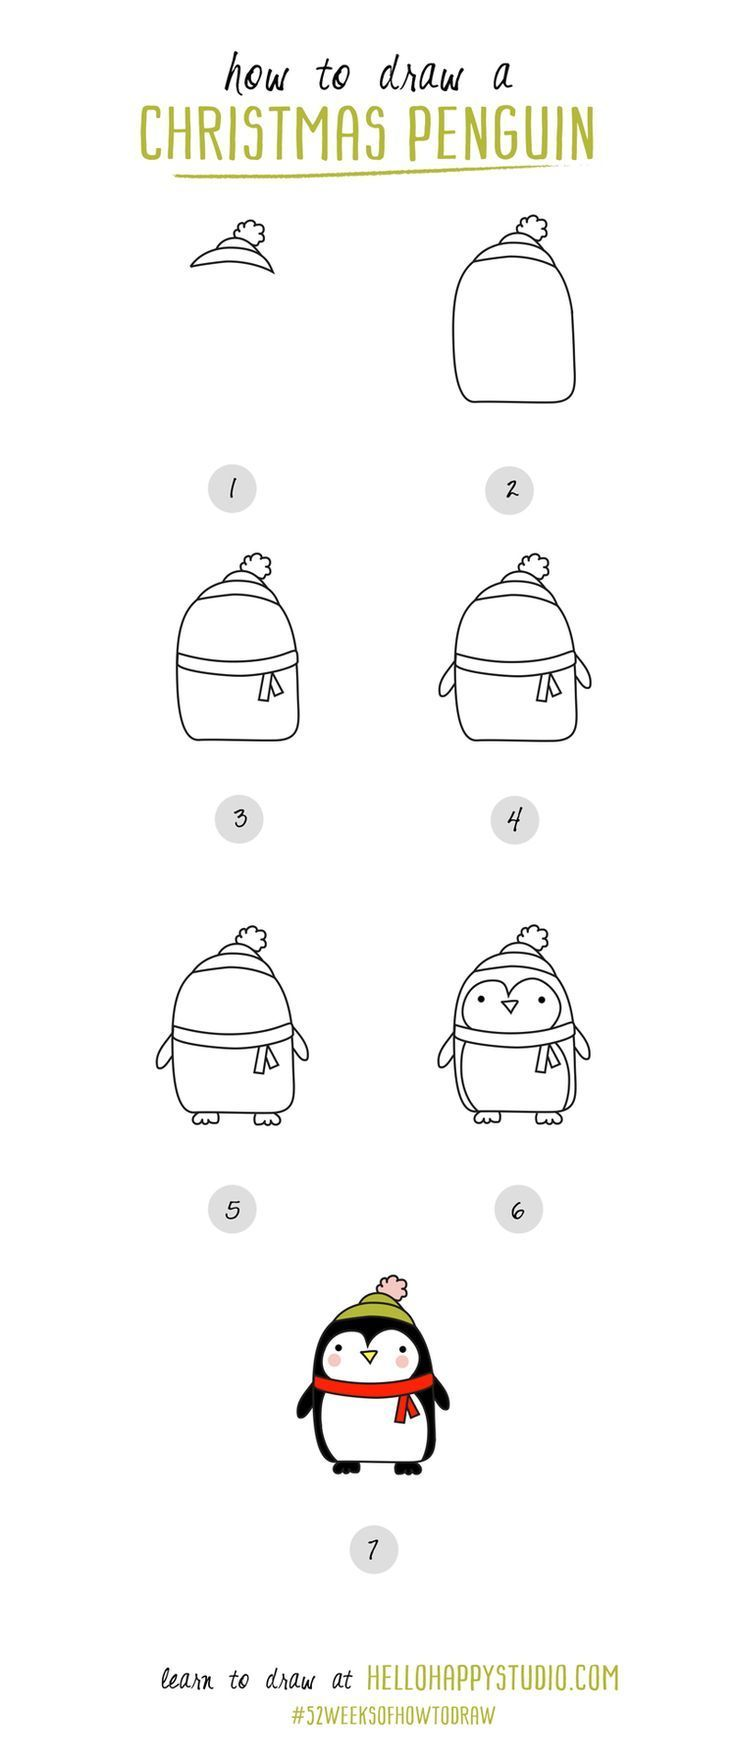 How to draw a Christmas penguin. Simple tutorial even kids could follow!